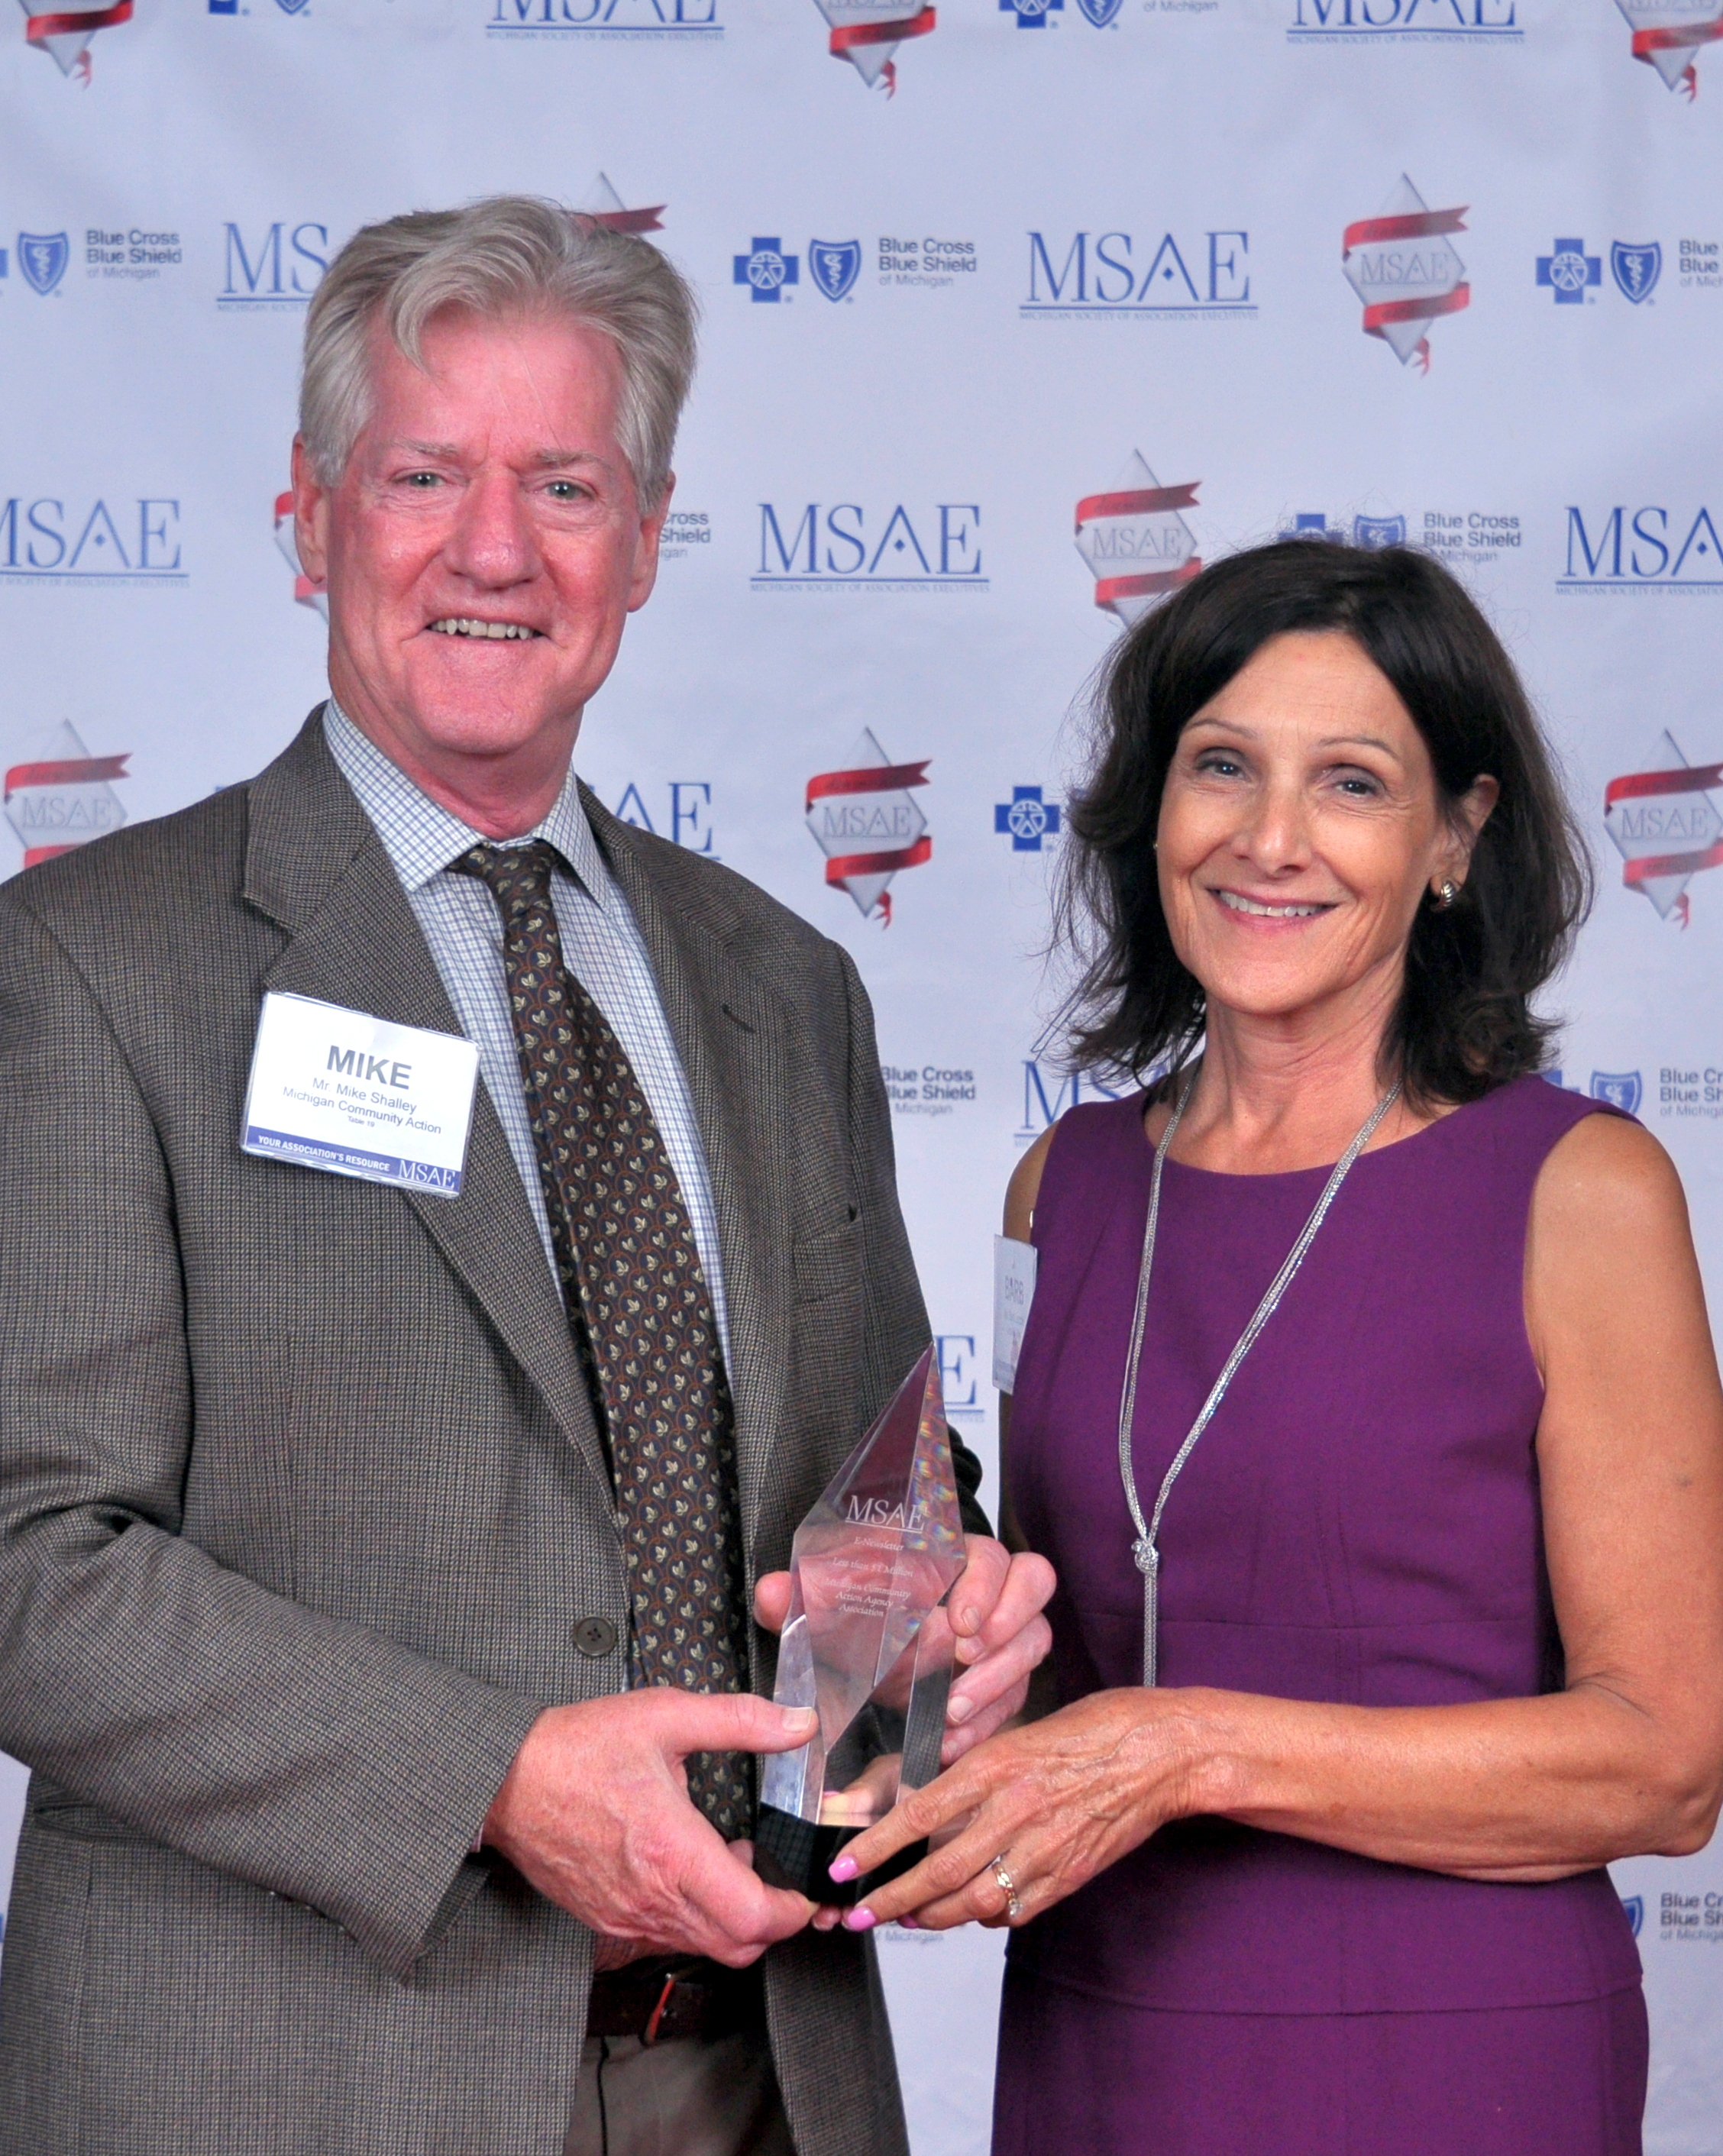 Mike Shalley, Member Services Director and Barb Lezotte, PR Consultant, accept the Diamond Award